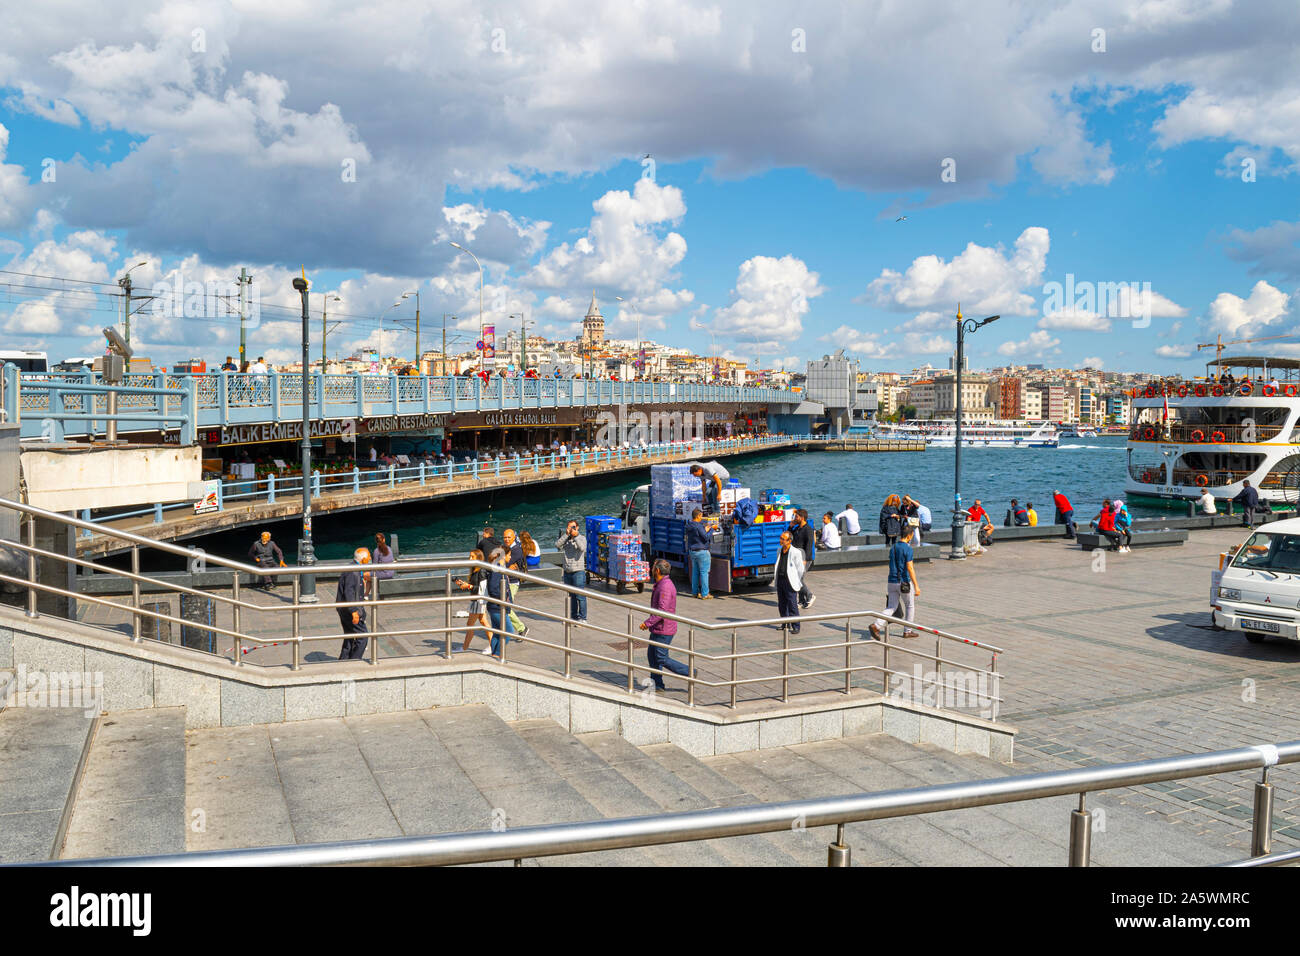 Tourists and local Turks near the ferry port at the Galata Bridge over the Bosphorus, with the Galata Tower in view. Stock Photo